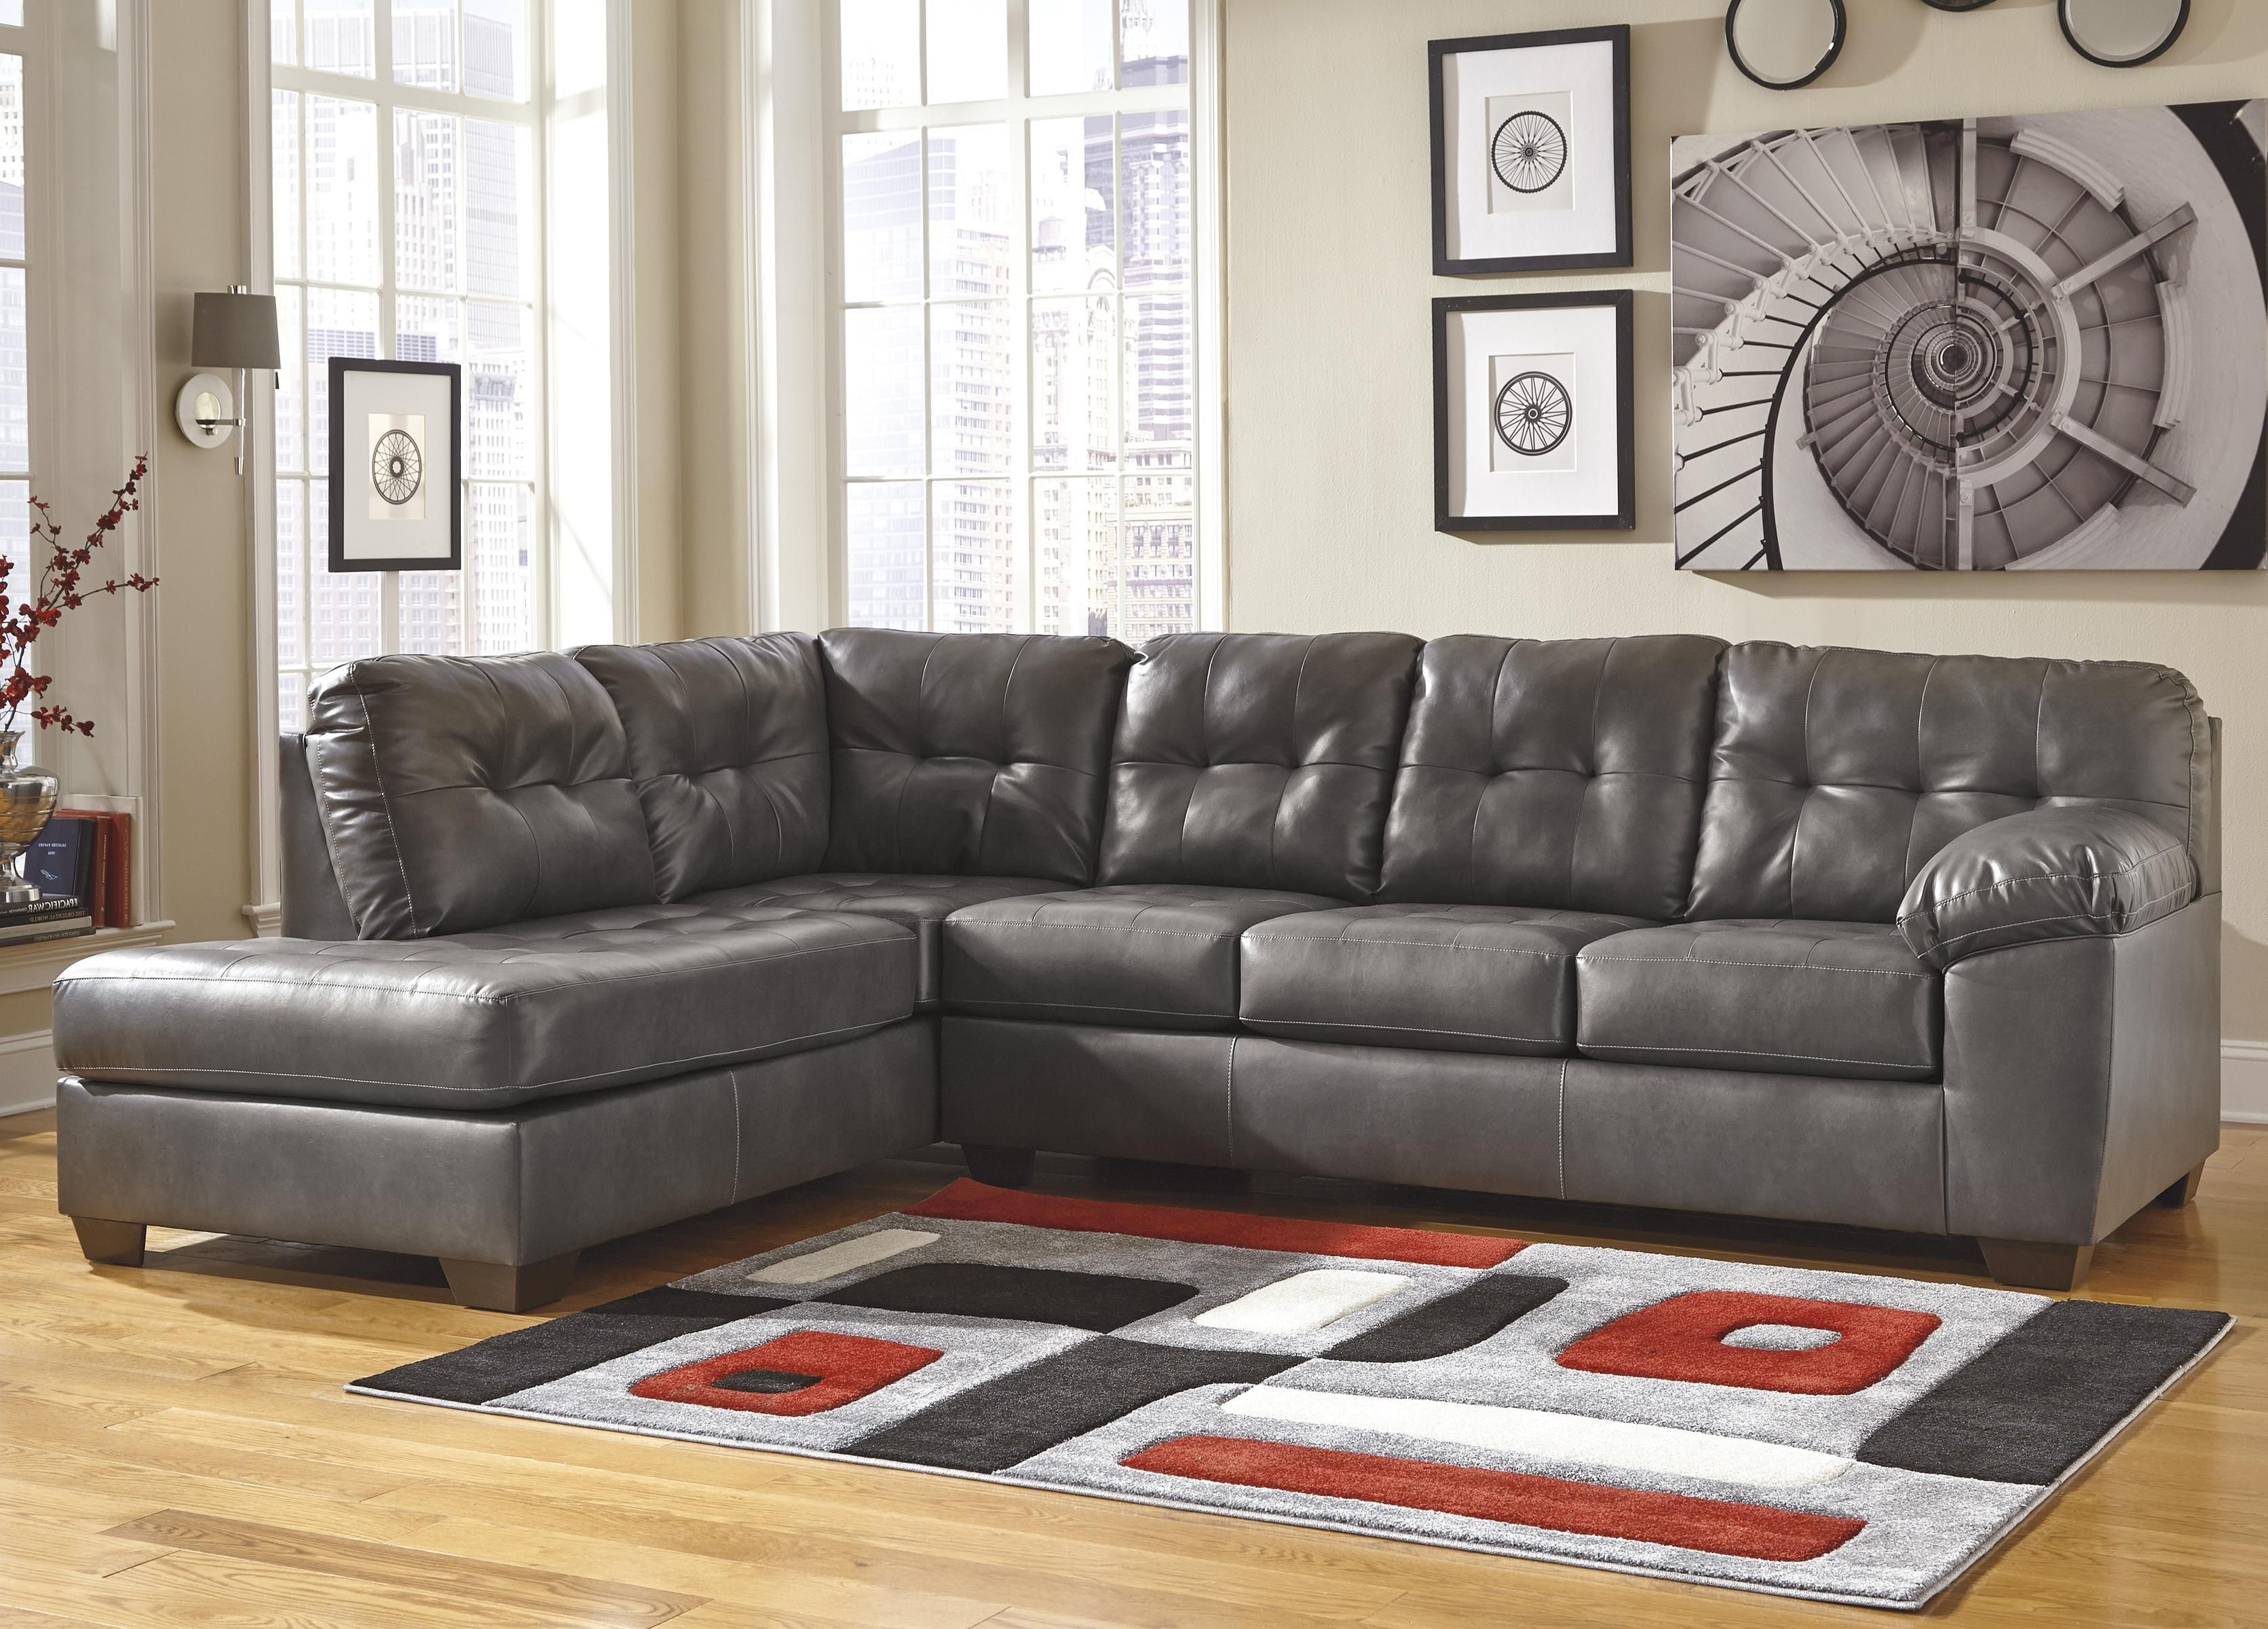 Signature Design By Ashley Alliston DuraBlend®   Gray Right Facing Sectional  W/ Tufting   Nice Ideas